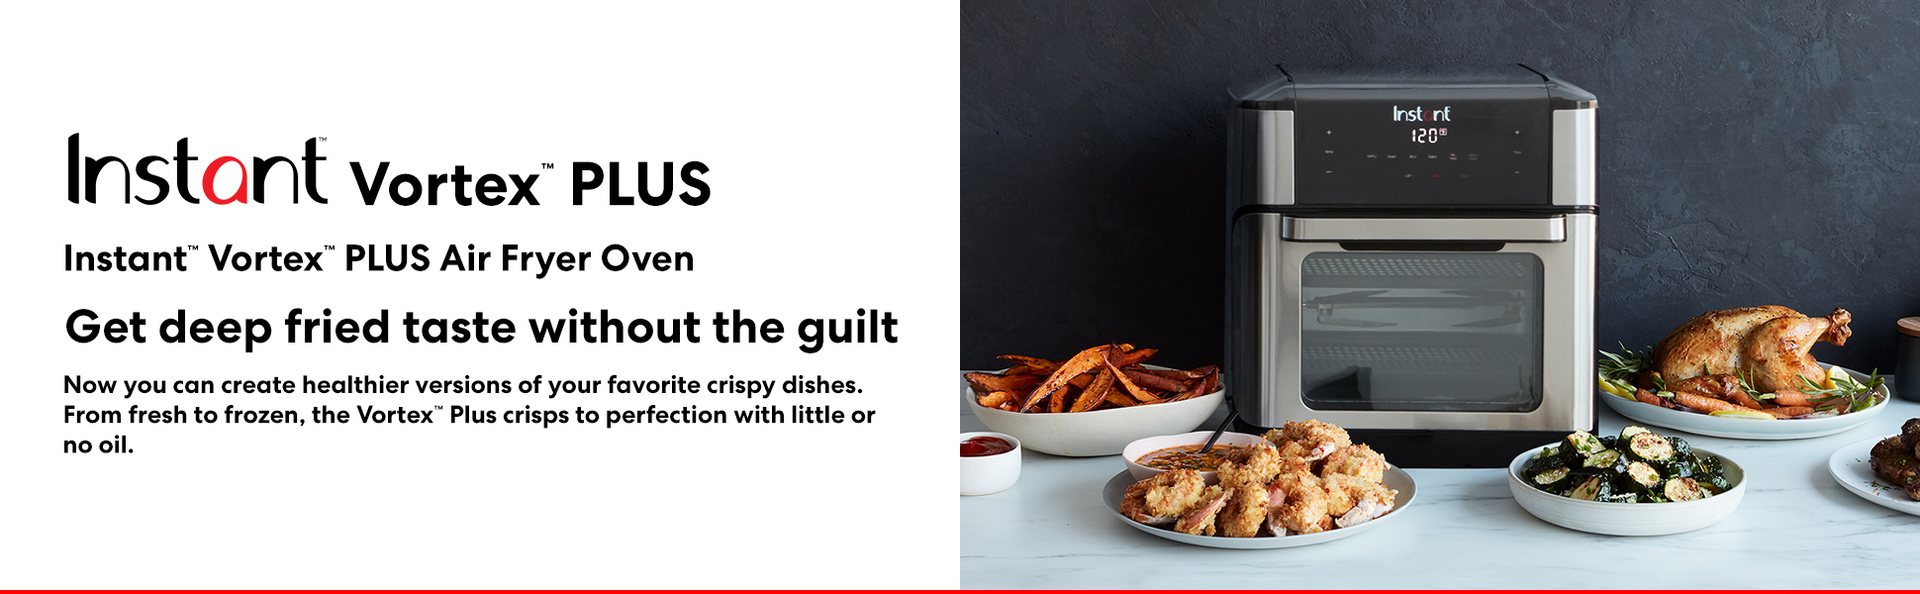 Instant Vortex Plus 7 In 1 Air Fryer Oven